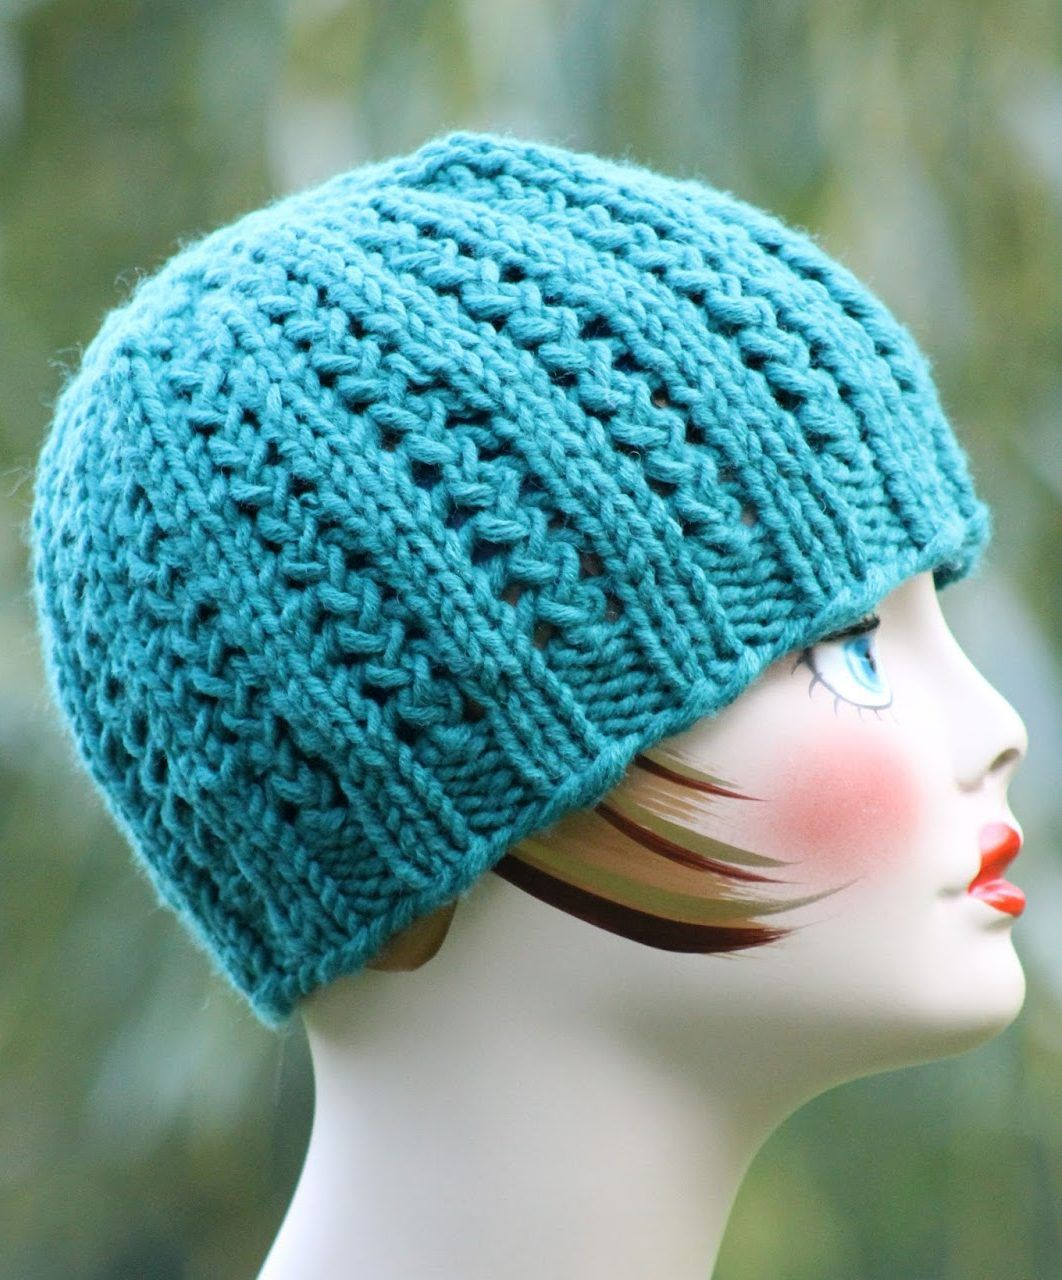 Free Knitting Pattern for 2 Row Repeat Rickrack Braid Hat - This ...